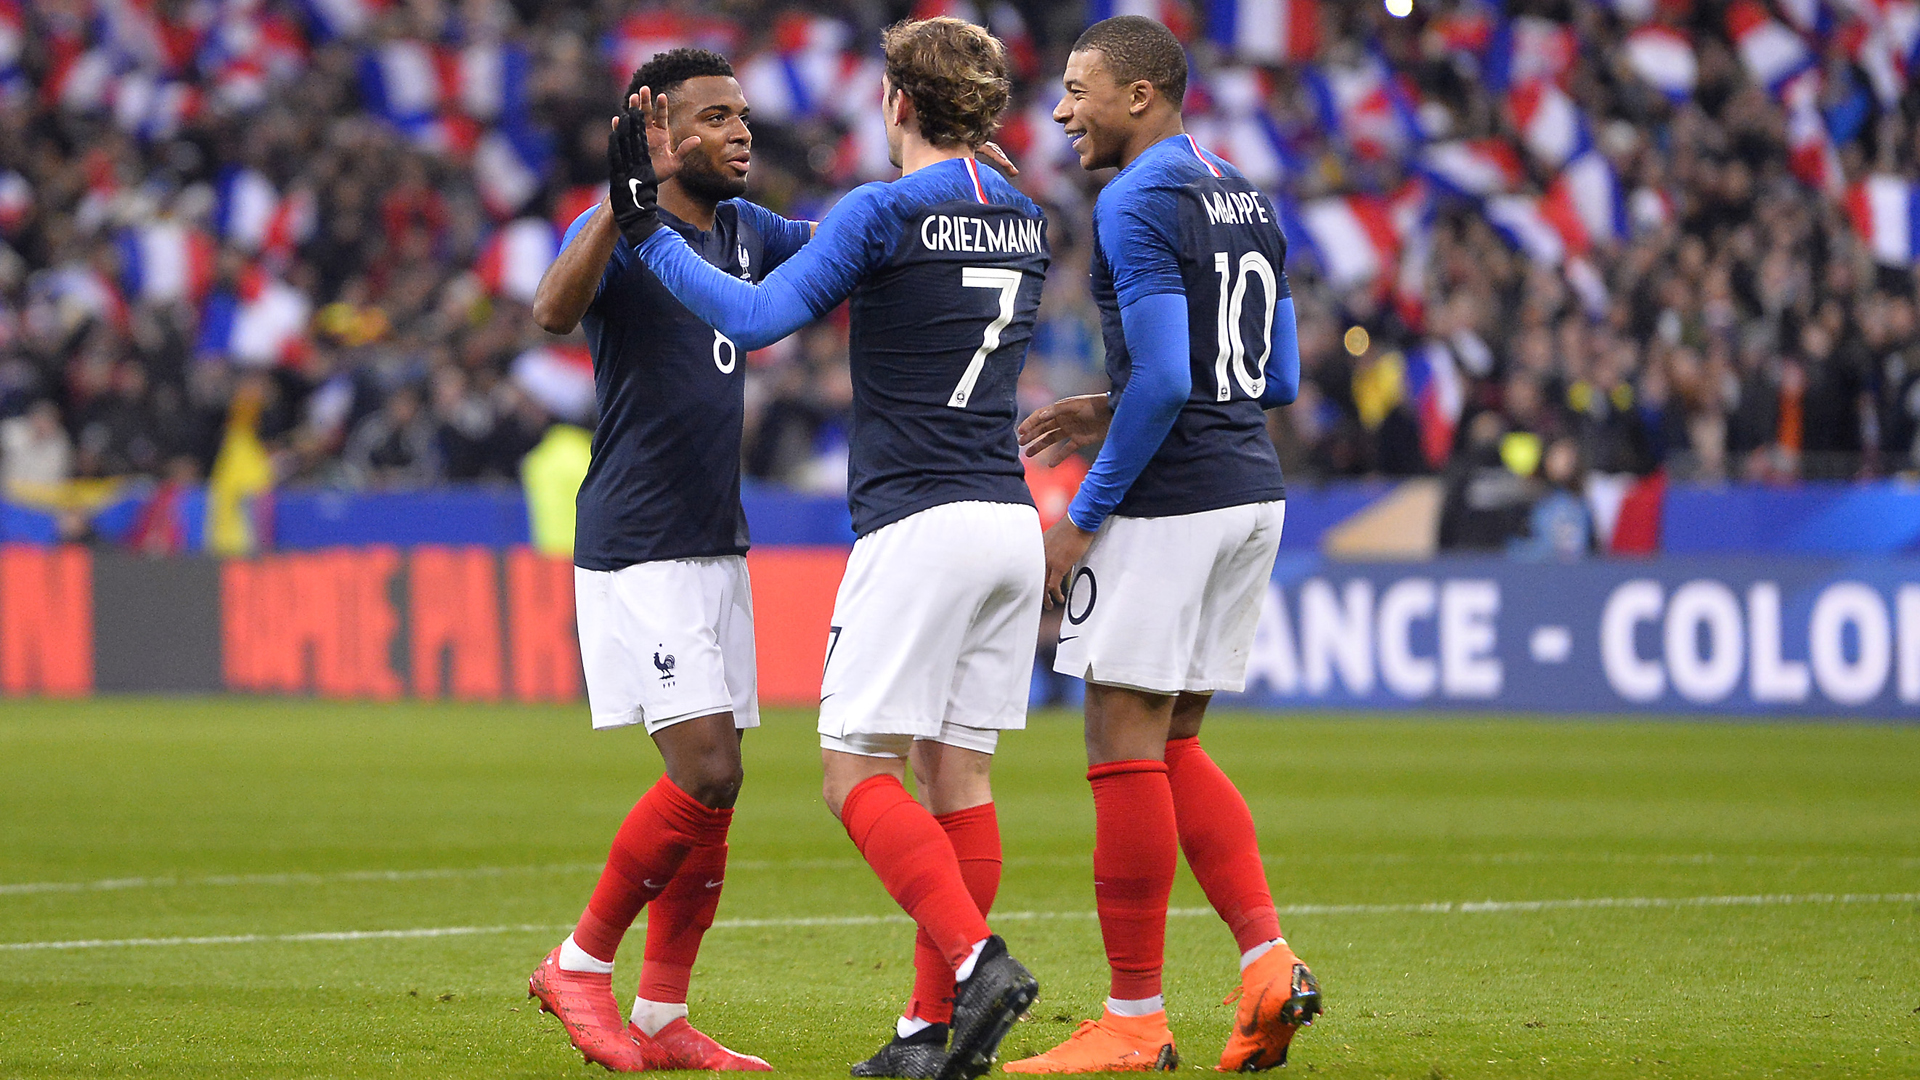 Technology saved France against Australia